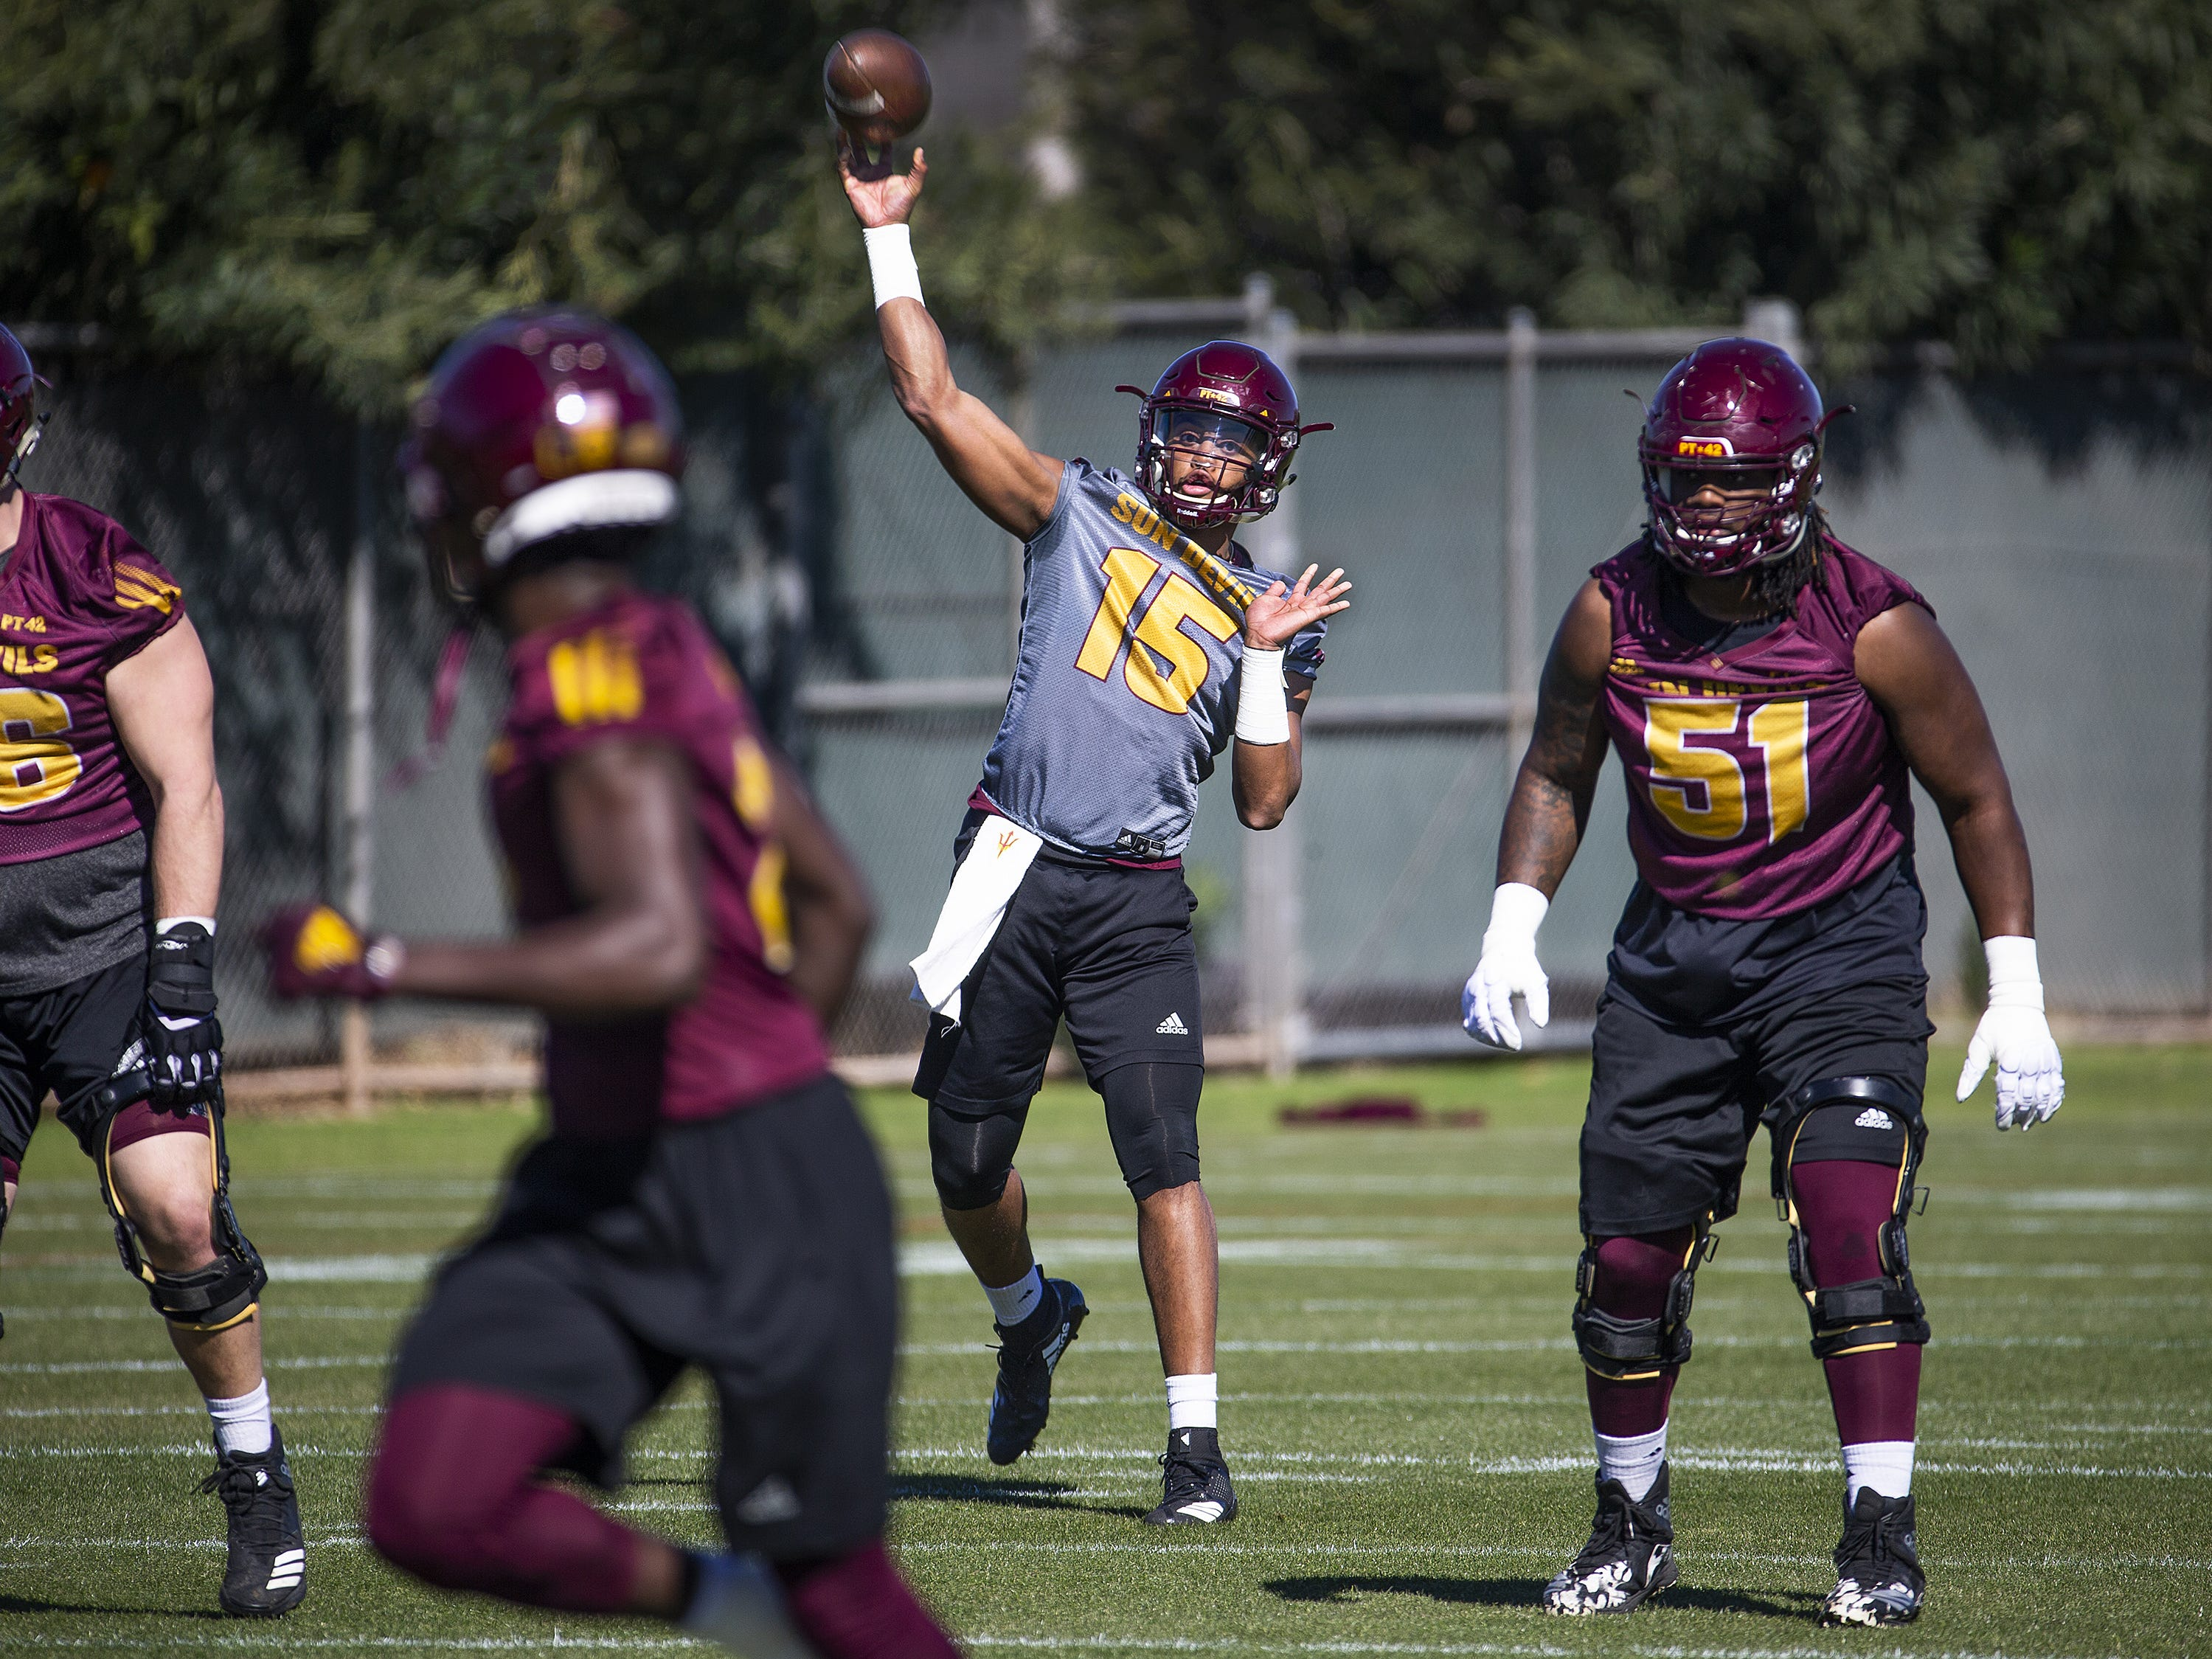 The Arizona State University football team practiced in Tempe, Tuesday, February 26, 2019.   Quarterback Dillon Sterling-Cole fires a pass.